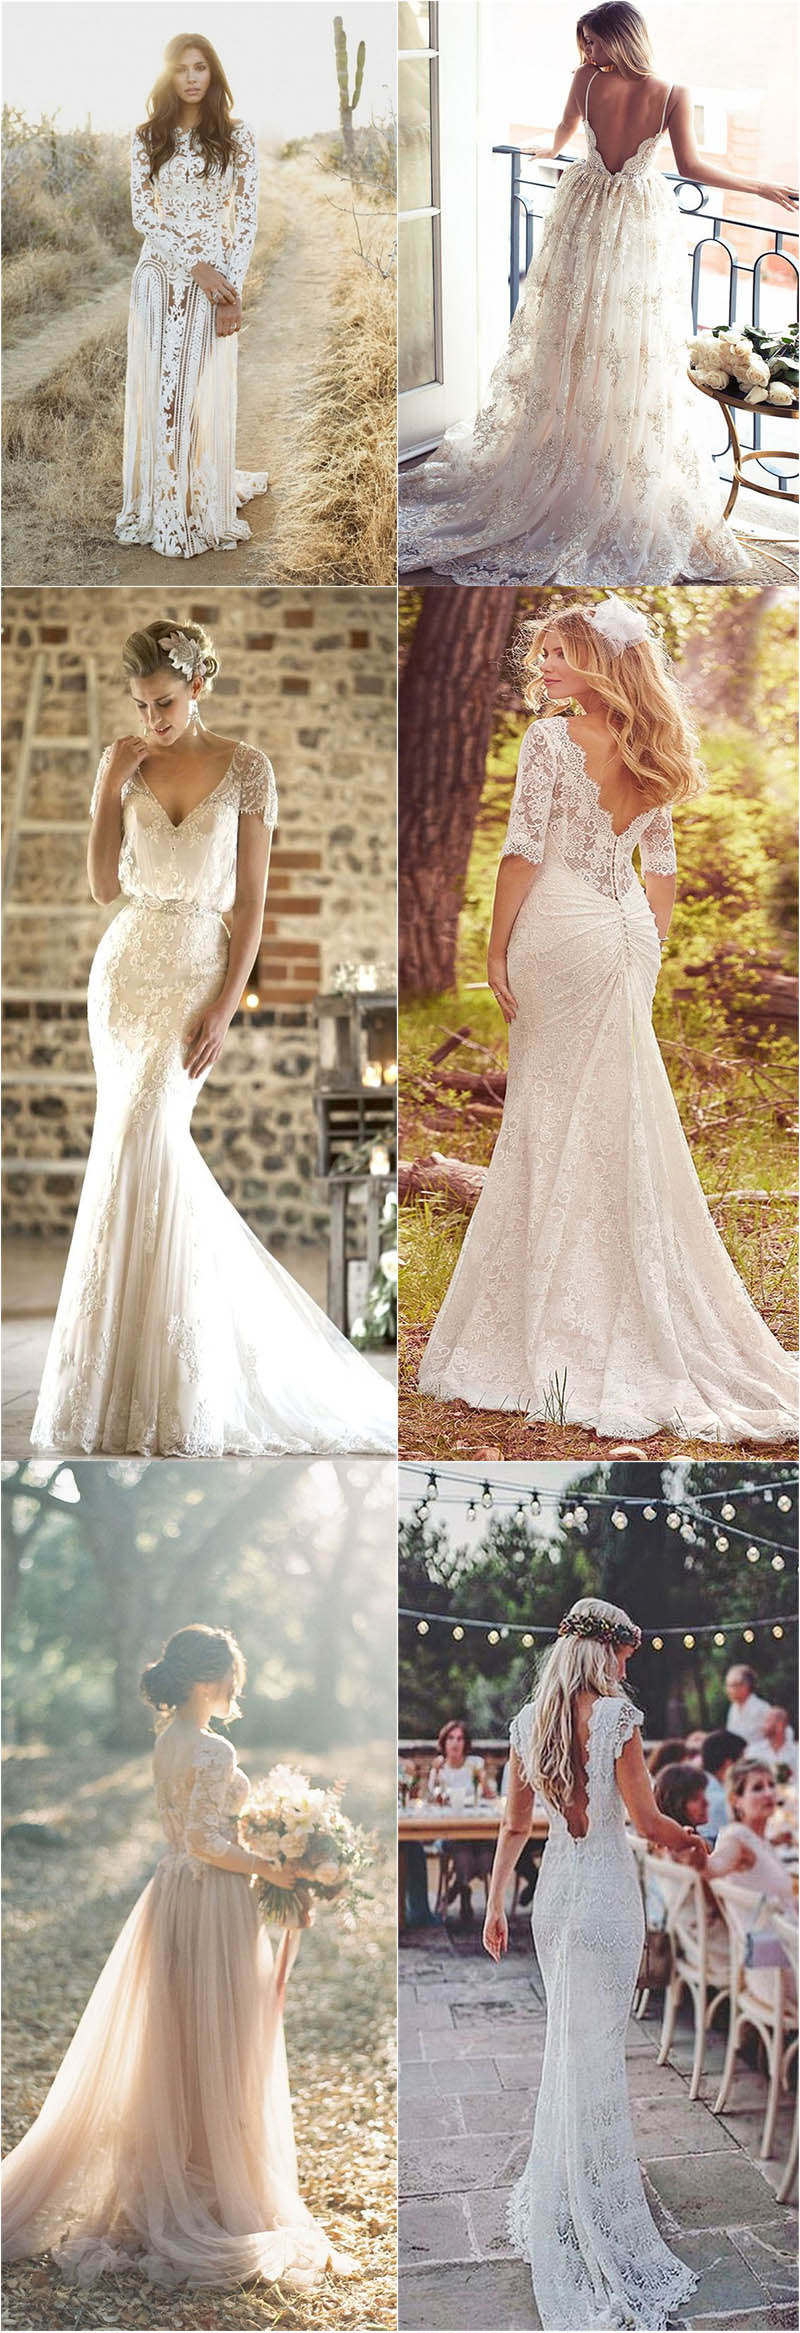 Shabby chic vintage wedding ideas you cant say no to vintage dresses to rock your wedding junglespirit Choice Image